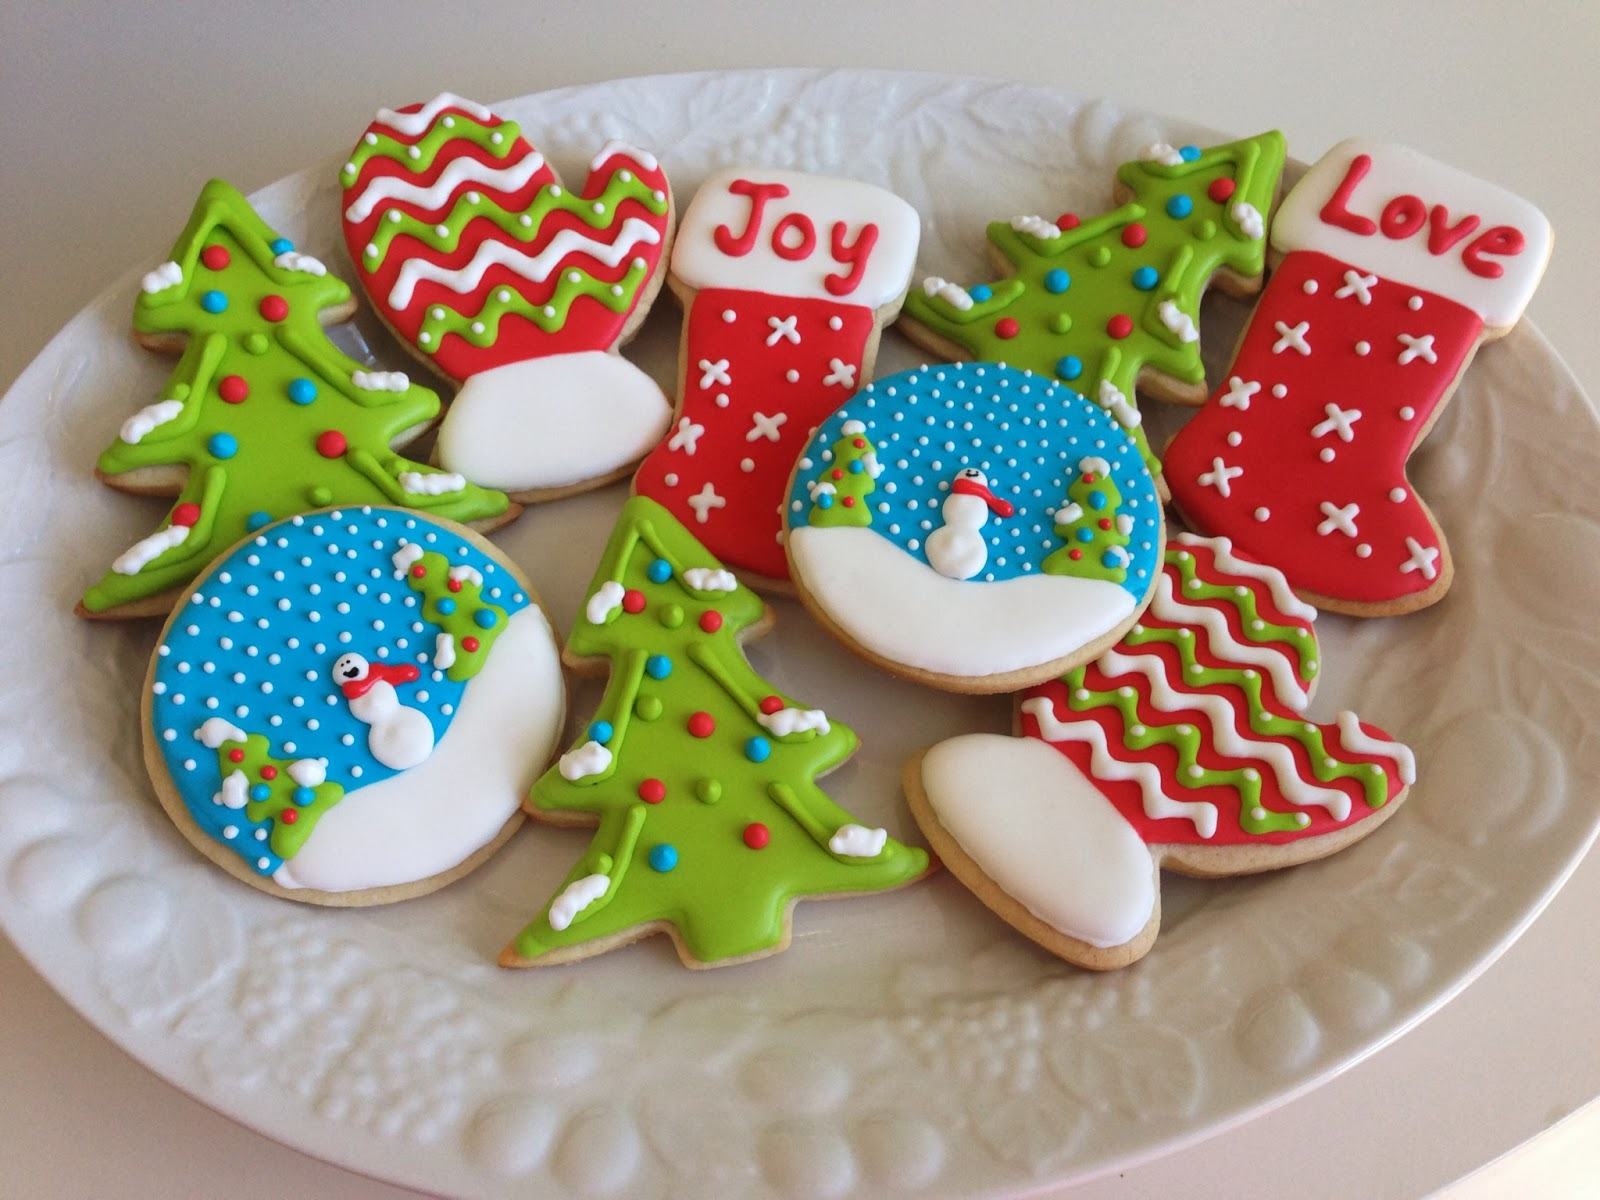 monograms & cake: Christmas Cut-Out Sugar Cookies with ...